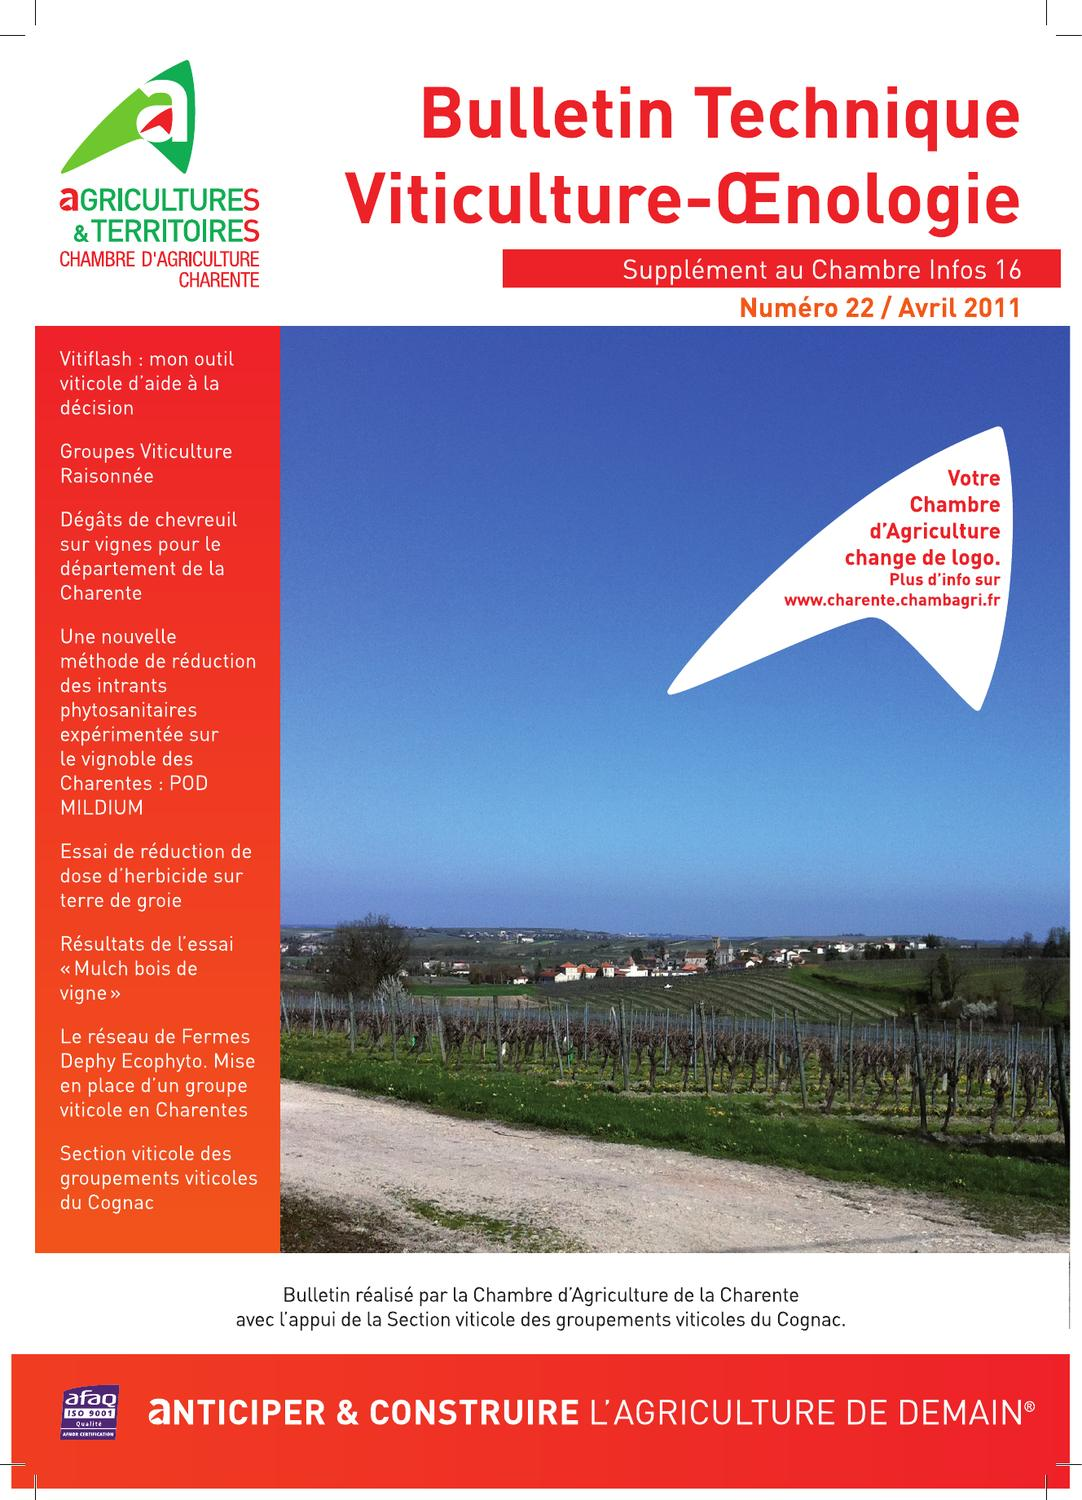 Chambre Agriculture Charente Bt Viticulture Oenologie By Cazaux Sandrine Issuu